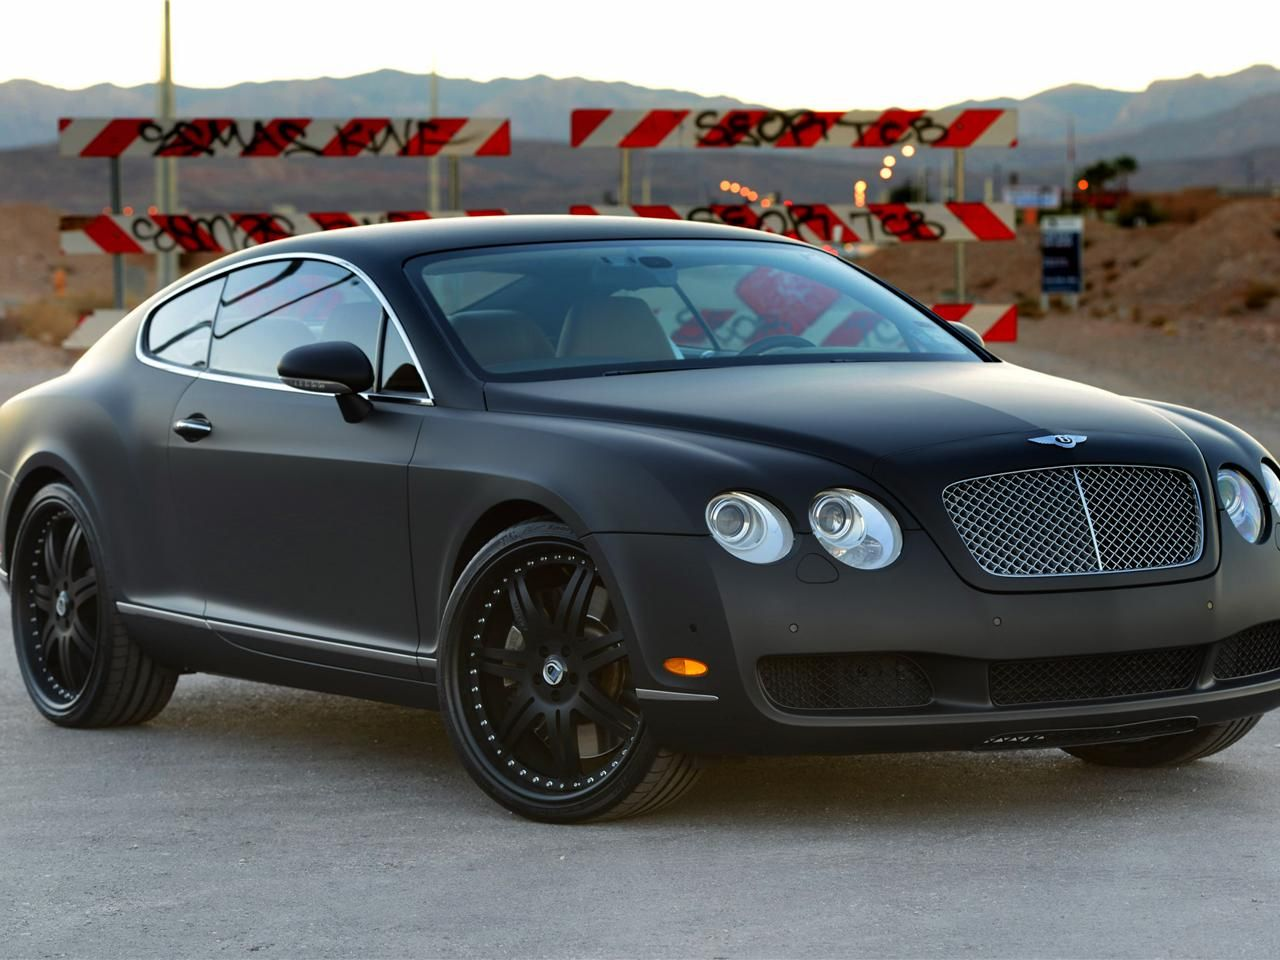 2005 Bentley Continental Gt Owners Manual Bentley Continental Gt 2005 Bentley Continental Gt Bentley Continental